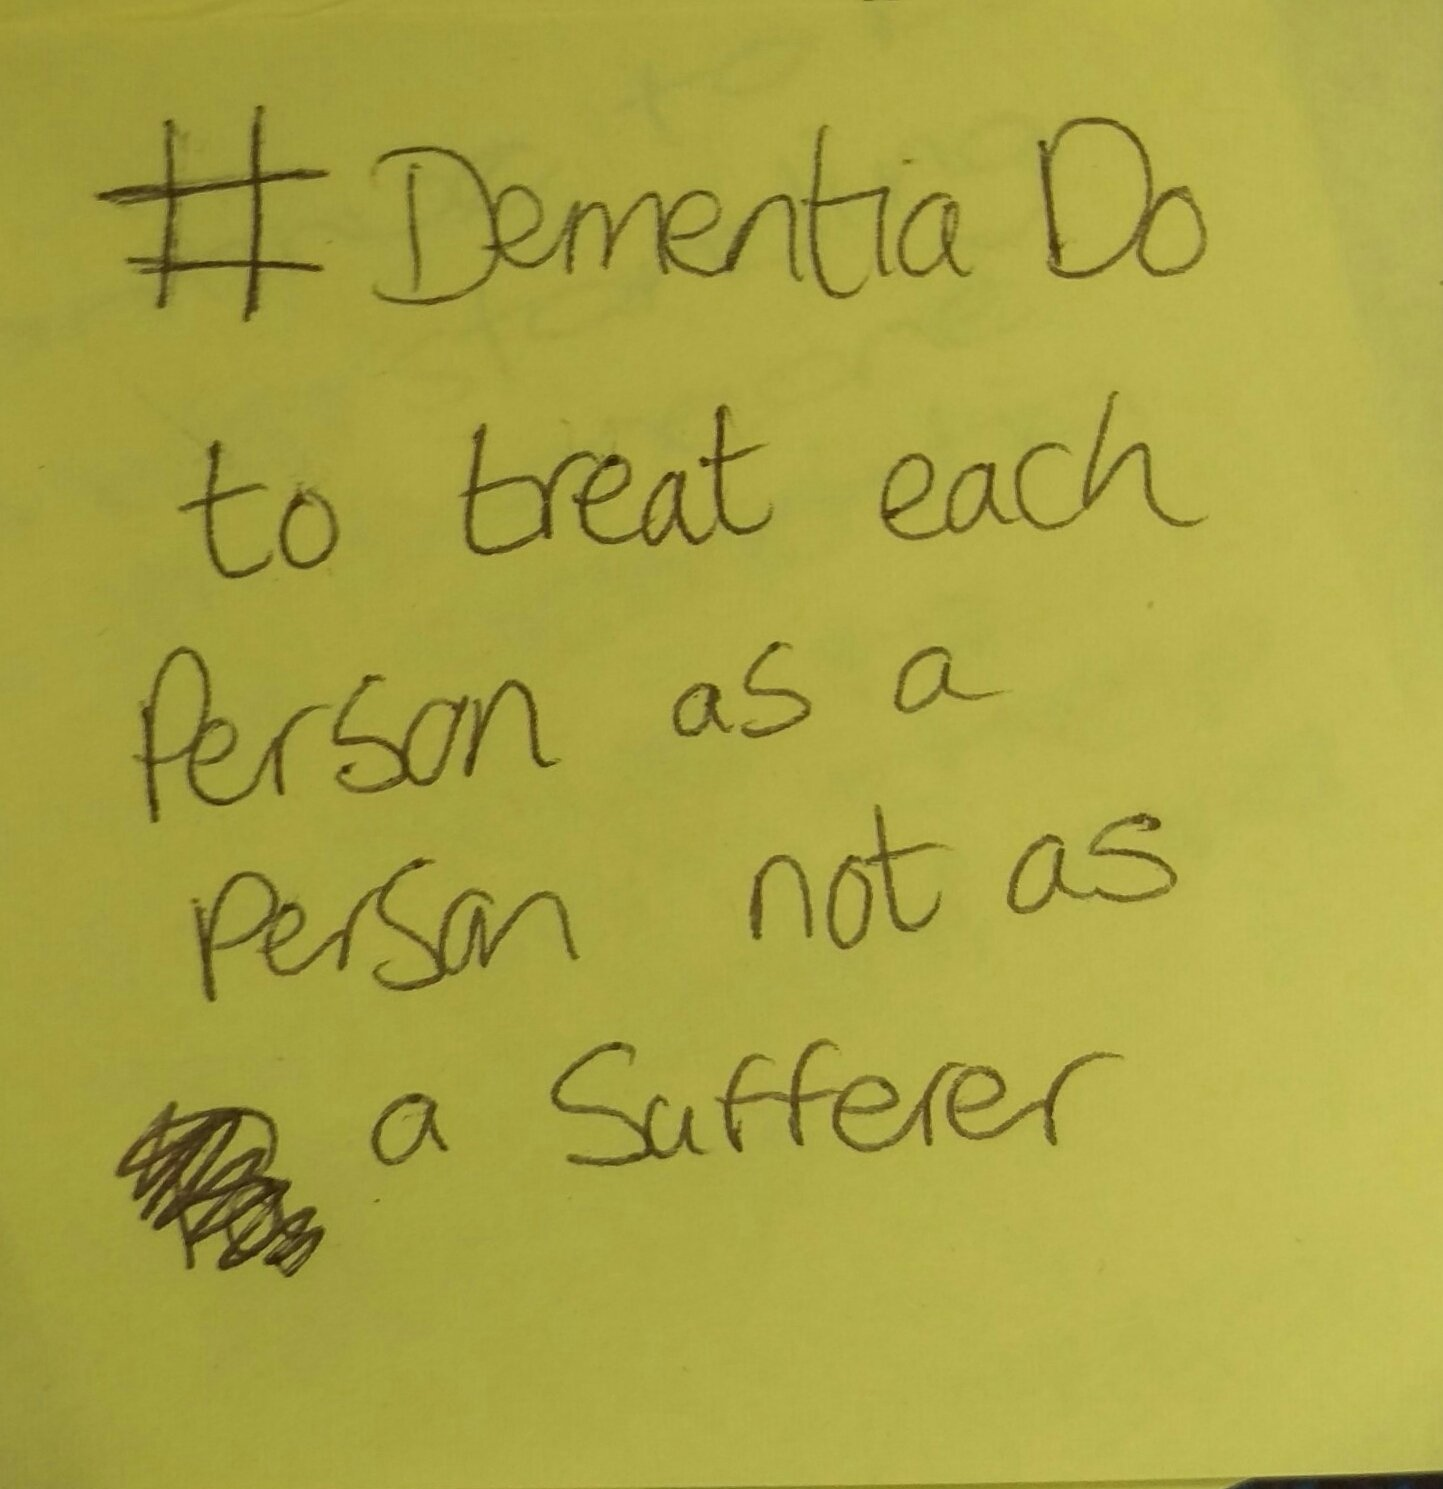 "Today's #dementiado post-it   ""To treat each person as a person not as a sufferer""  Brilliant, well said.  #FabChangeDay https://t.co/VMbcvCCKIs"